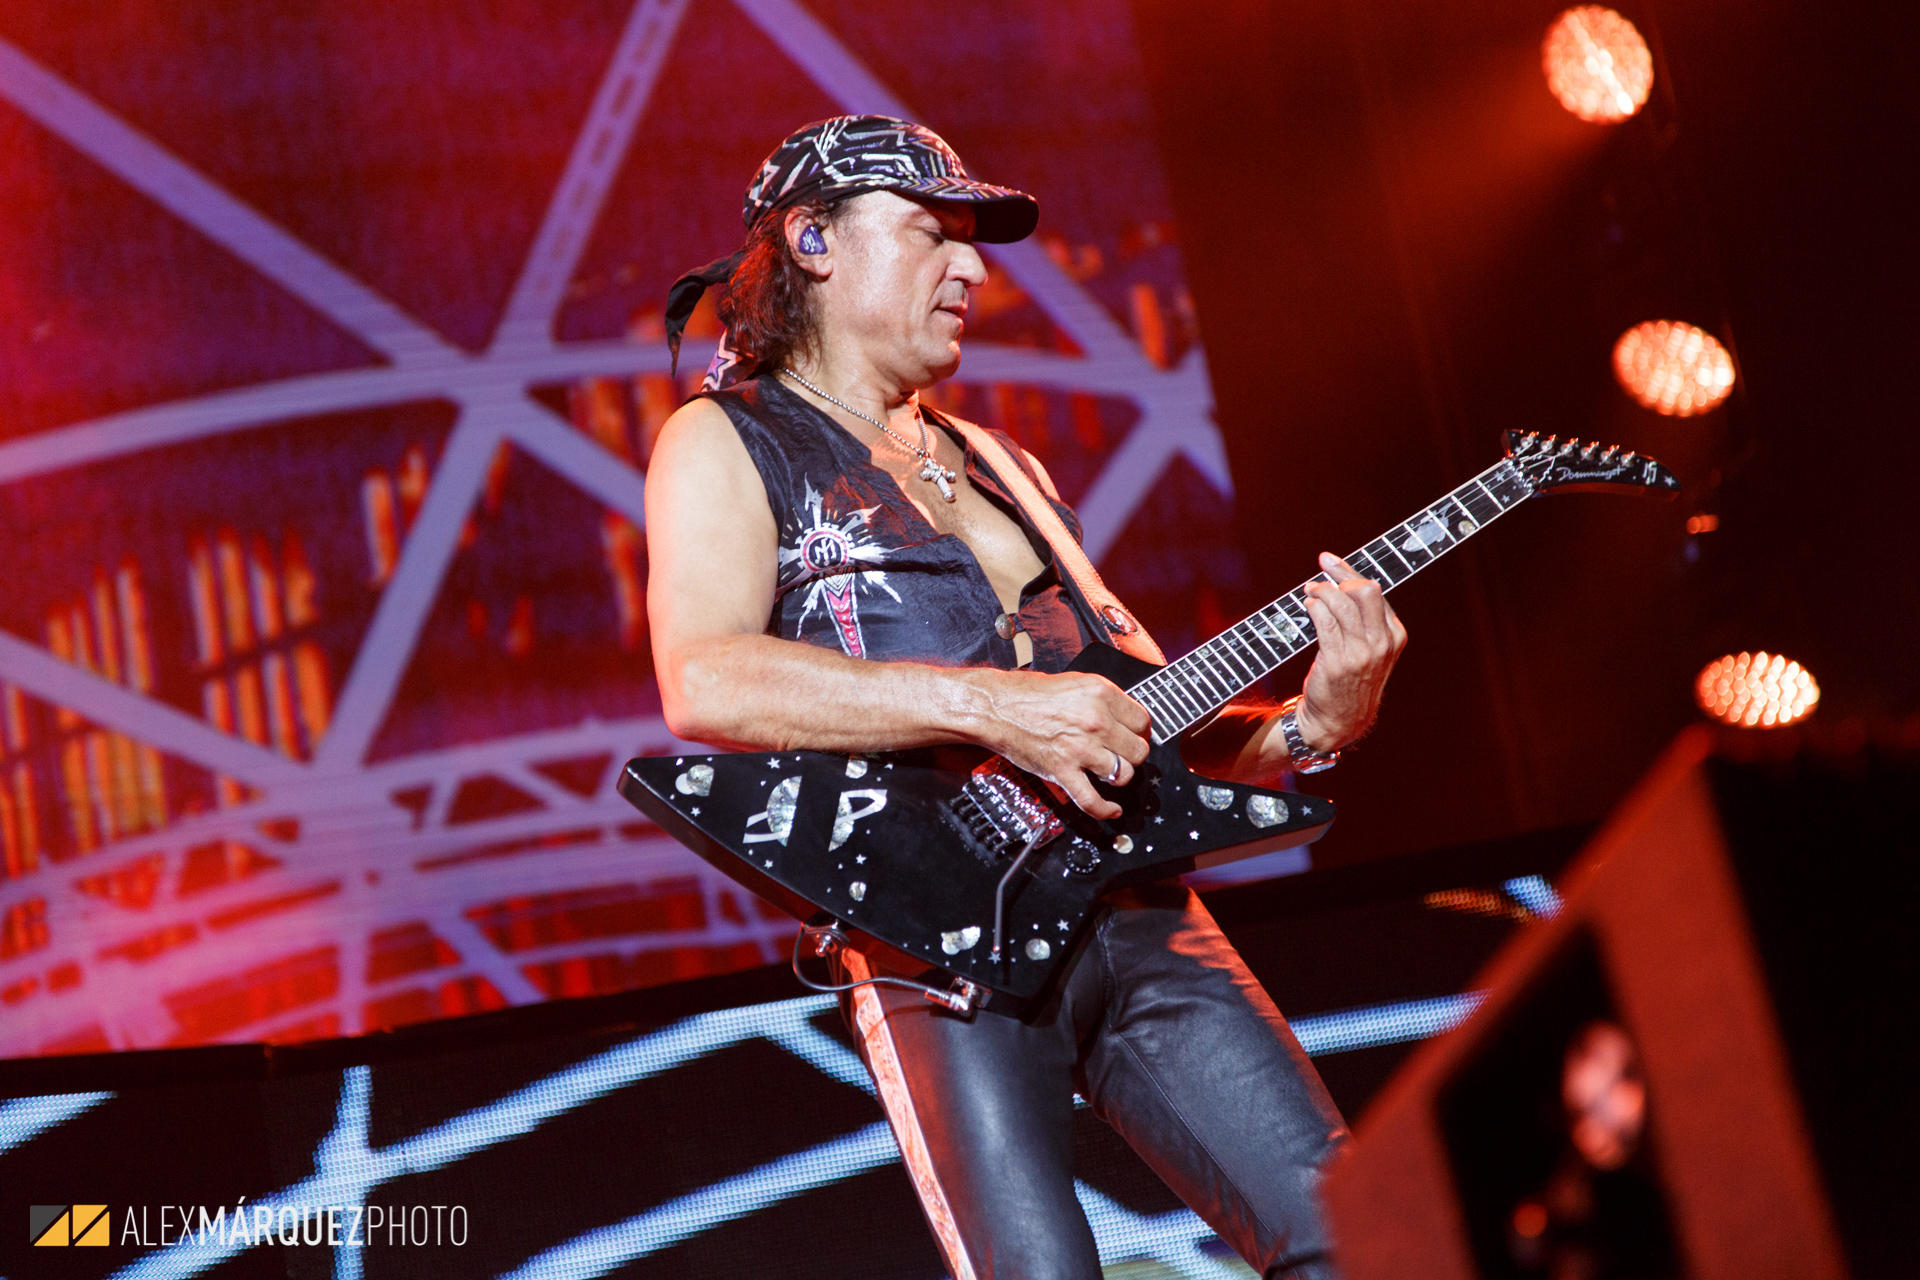 Scorpions - Alex Márquez Photo